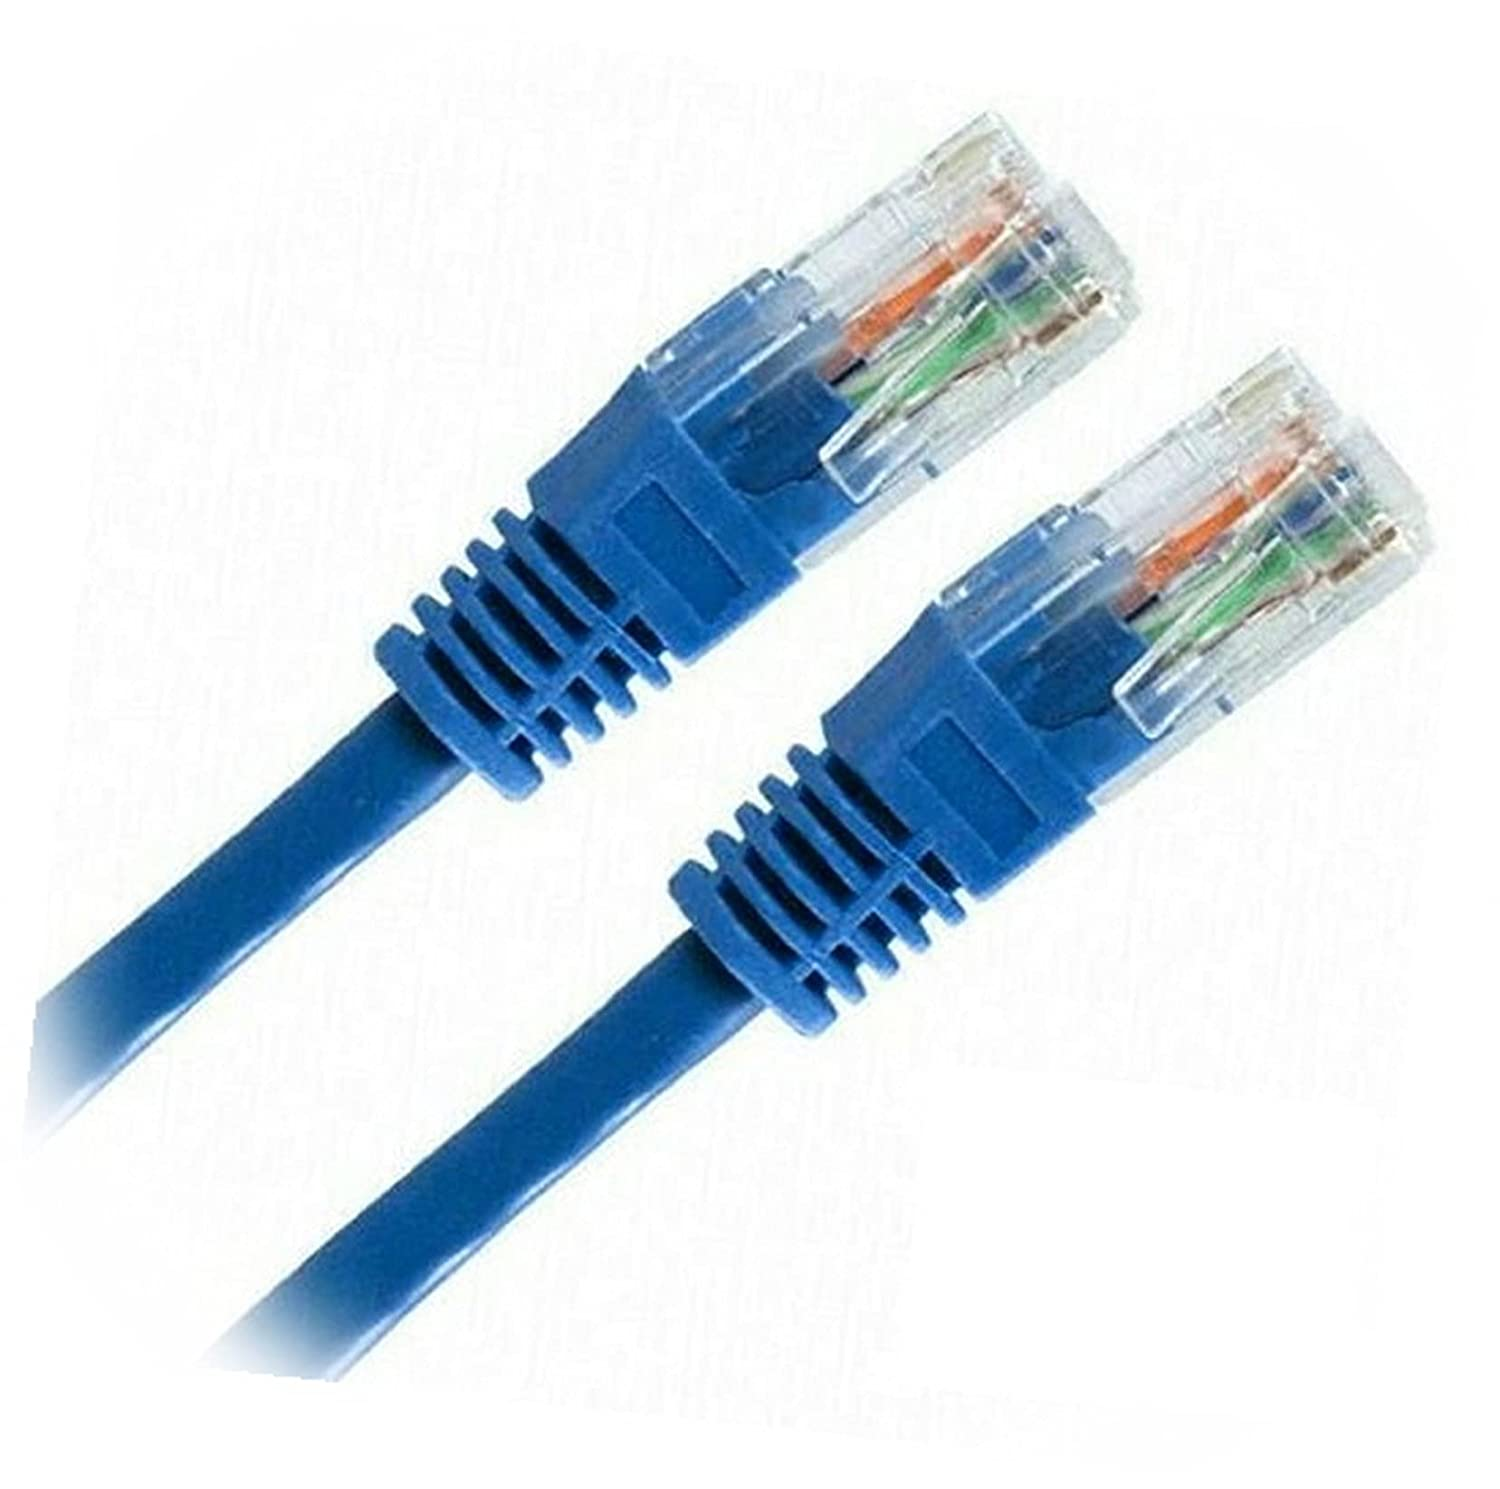 New 3 Limited time cheap sale Pack Reservation Lot - 15ft Ethernet LAN Co Cable Patch Router Network